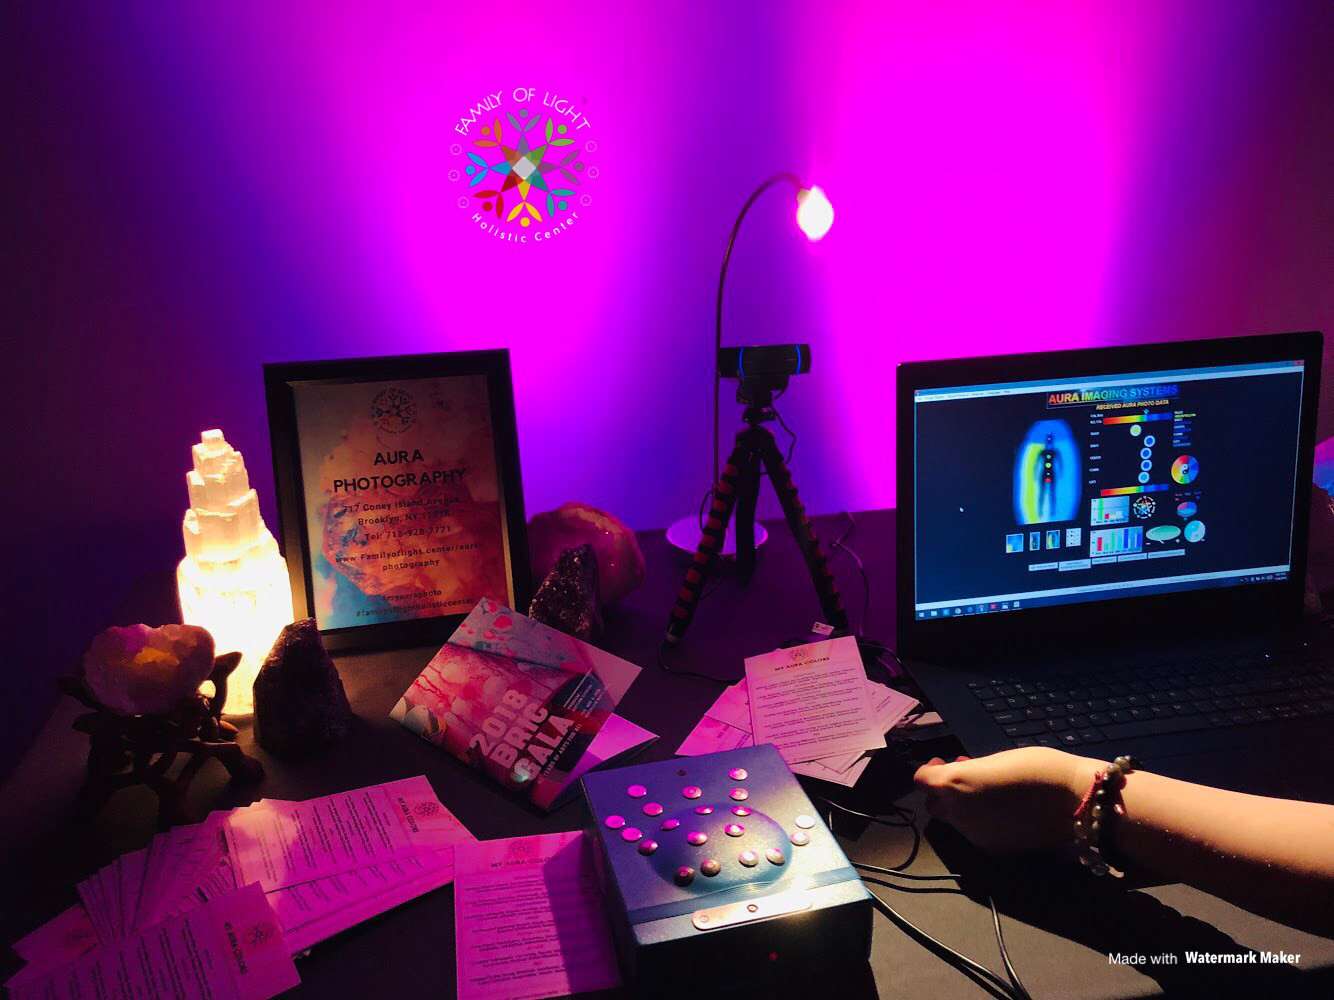 Aura Photography Workspace